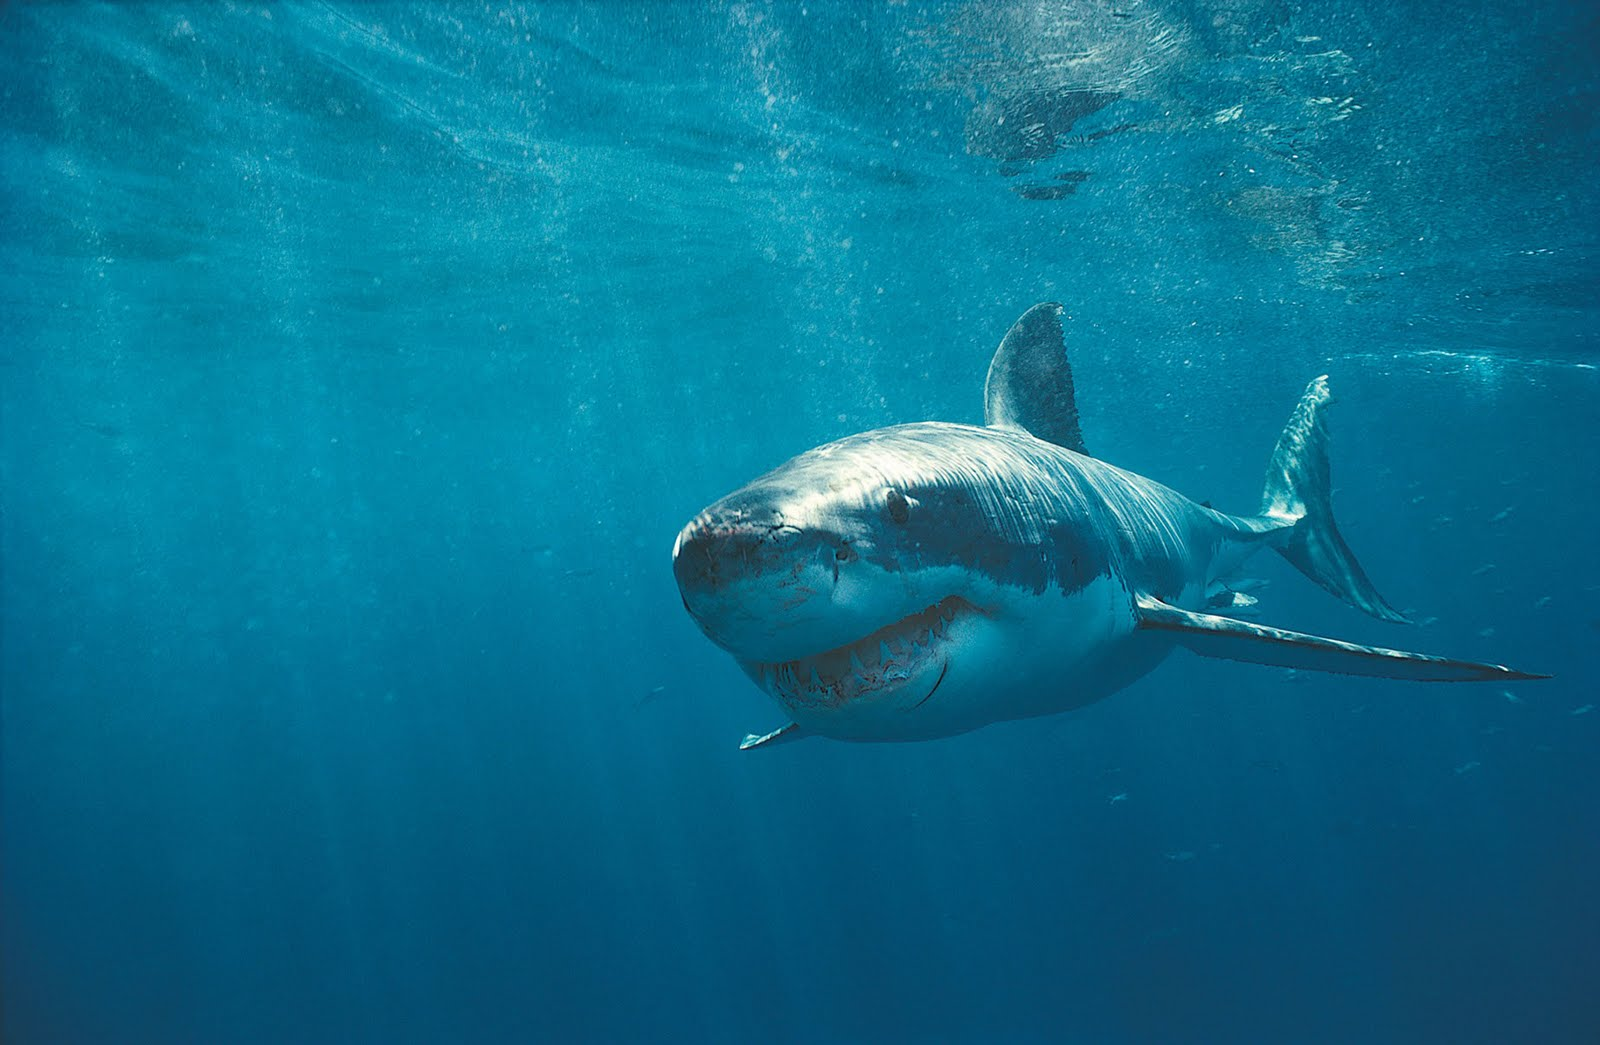 Wallpapers Box: The Great White Shark Hi-Def Wallpapers